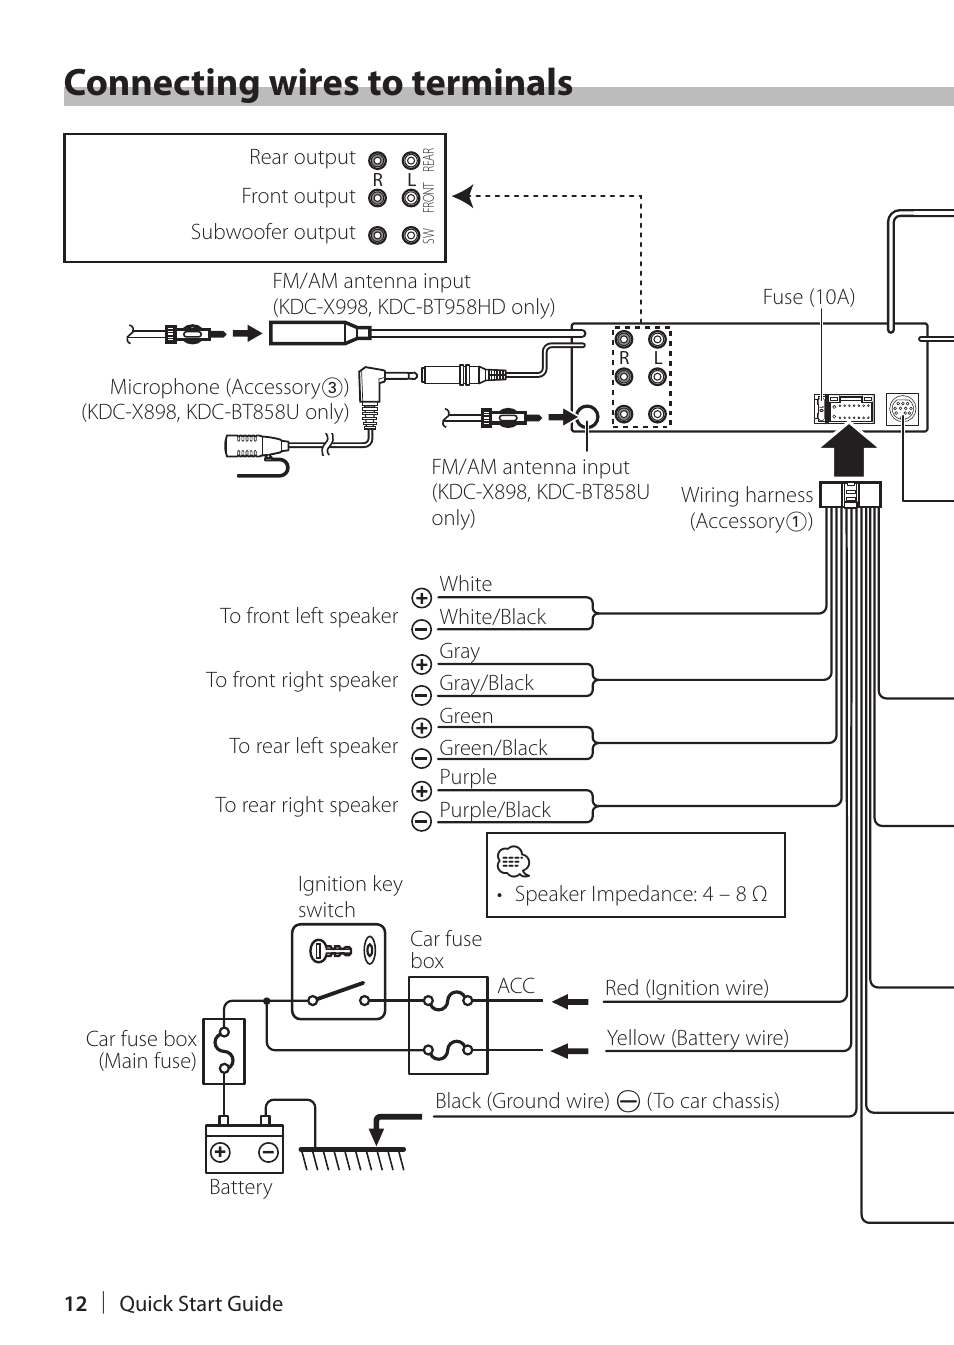 wiring diagram kenwood kdc 108 wiring image wiring kenwood kdc x998 wiring diagram kenwood image on wiring diagram kenwood kdc 108